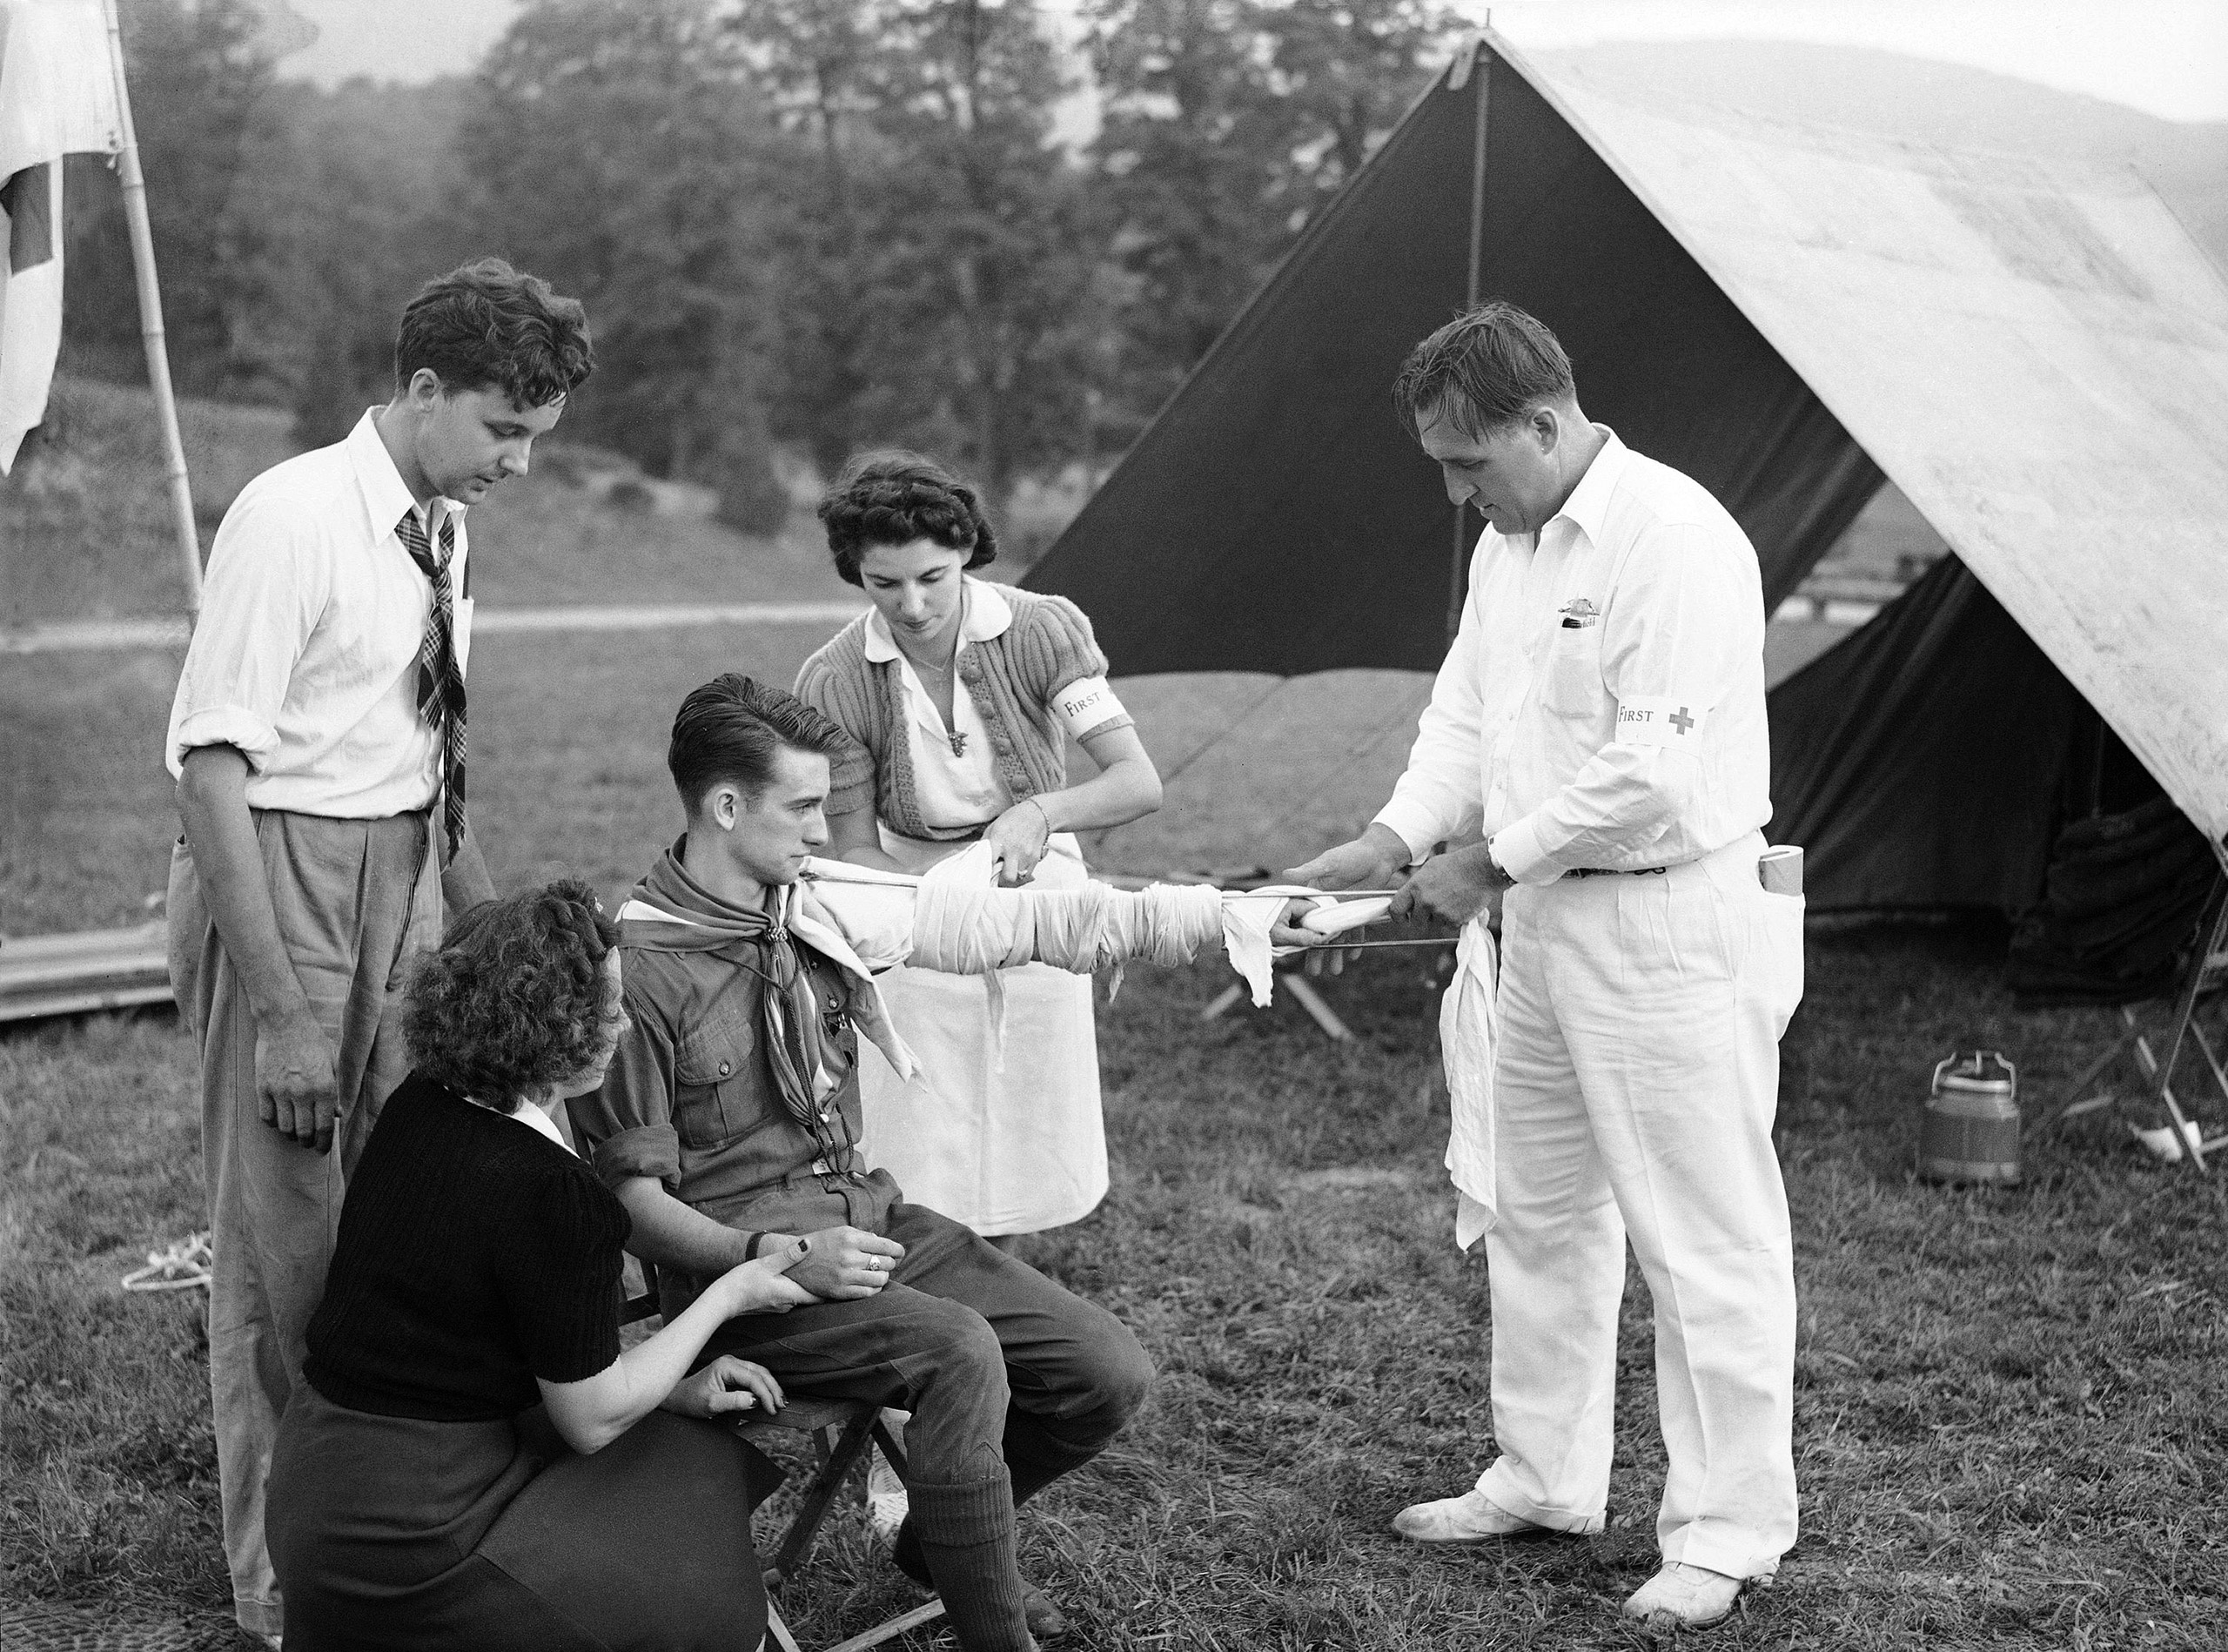 A Boy Scout has his arm tied up in a splint after it has been dressed by Red Cross workers from Poughkeepsie, N.Y., following the  evacuation  of about 2,000 New Yorkers who left for Dutchess County in New York, Sept. 9, 1941. Simulating wartime conditions volunteers left the city and drove north to avoid an imaginary  bombing  of New York. It was part of a demonstration of civilian defense work.